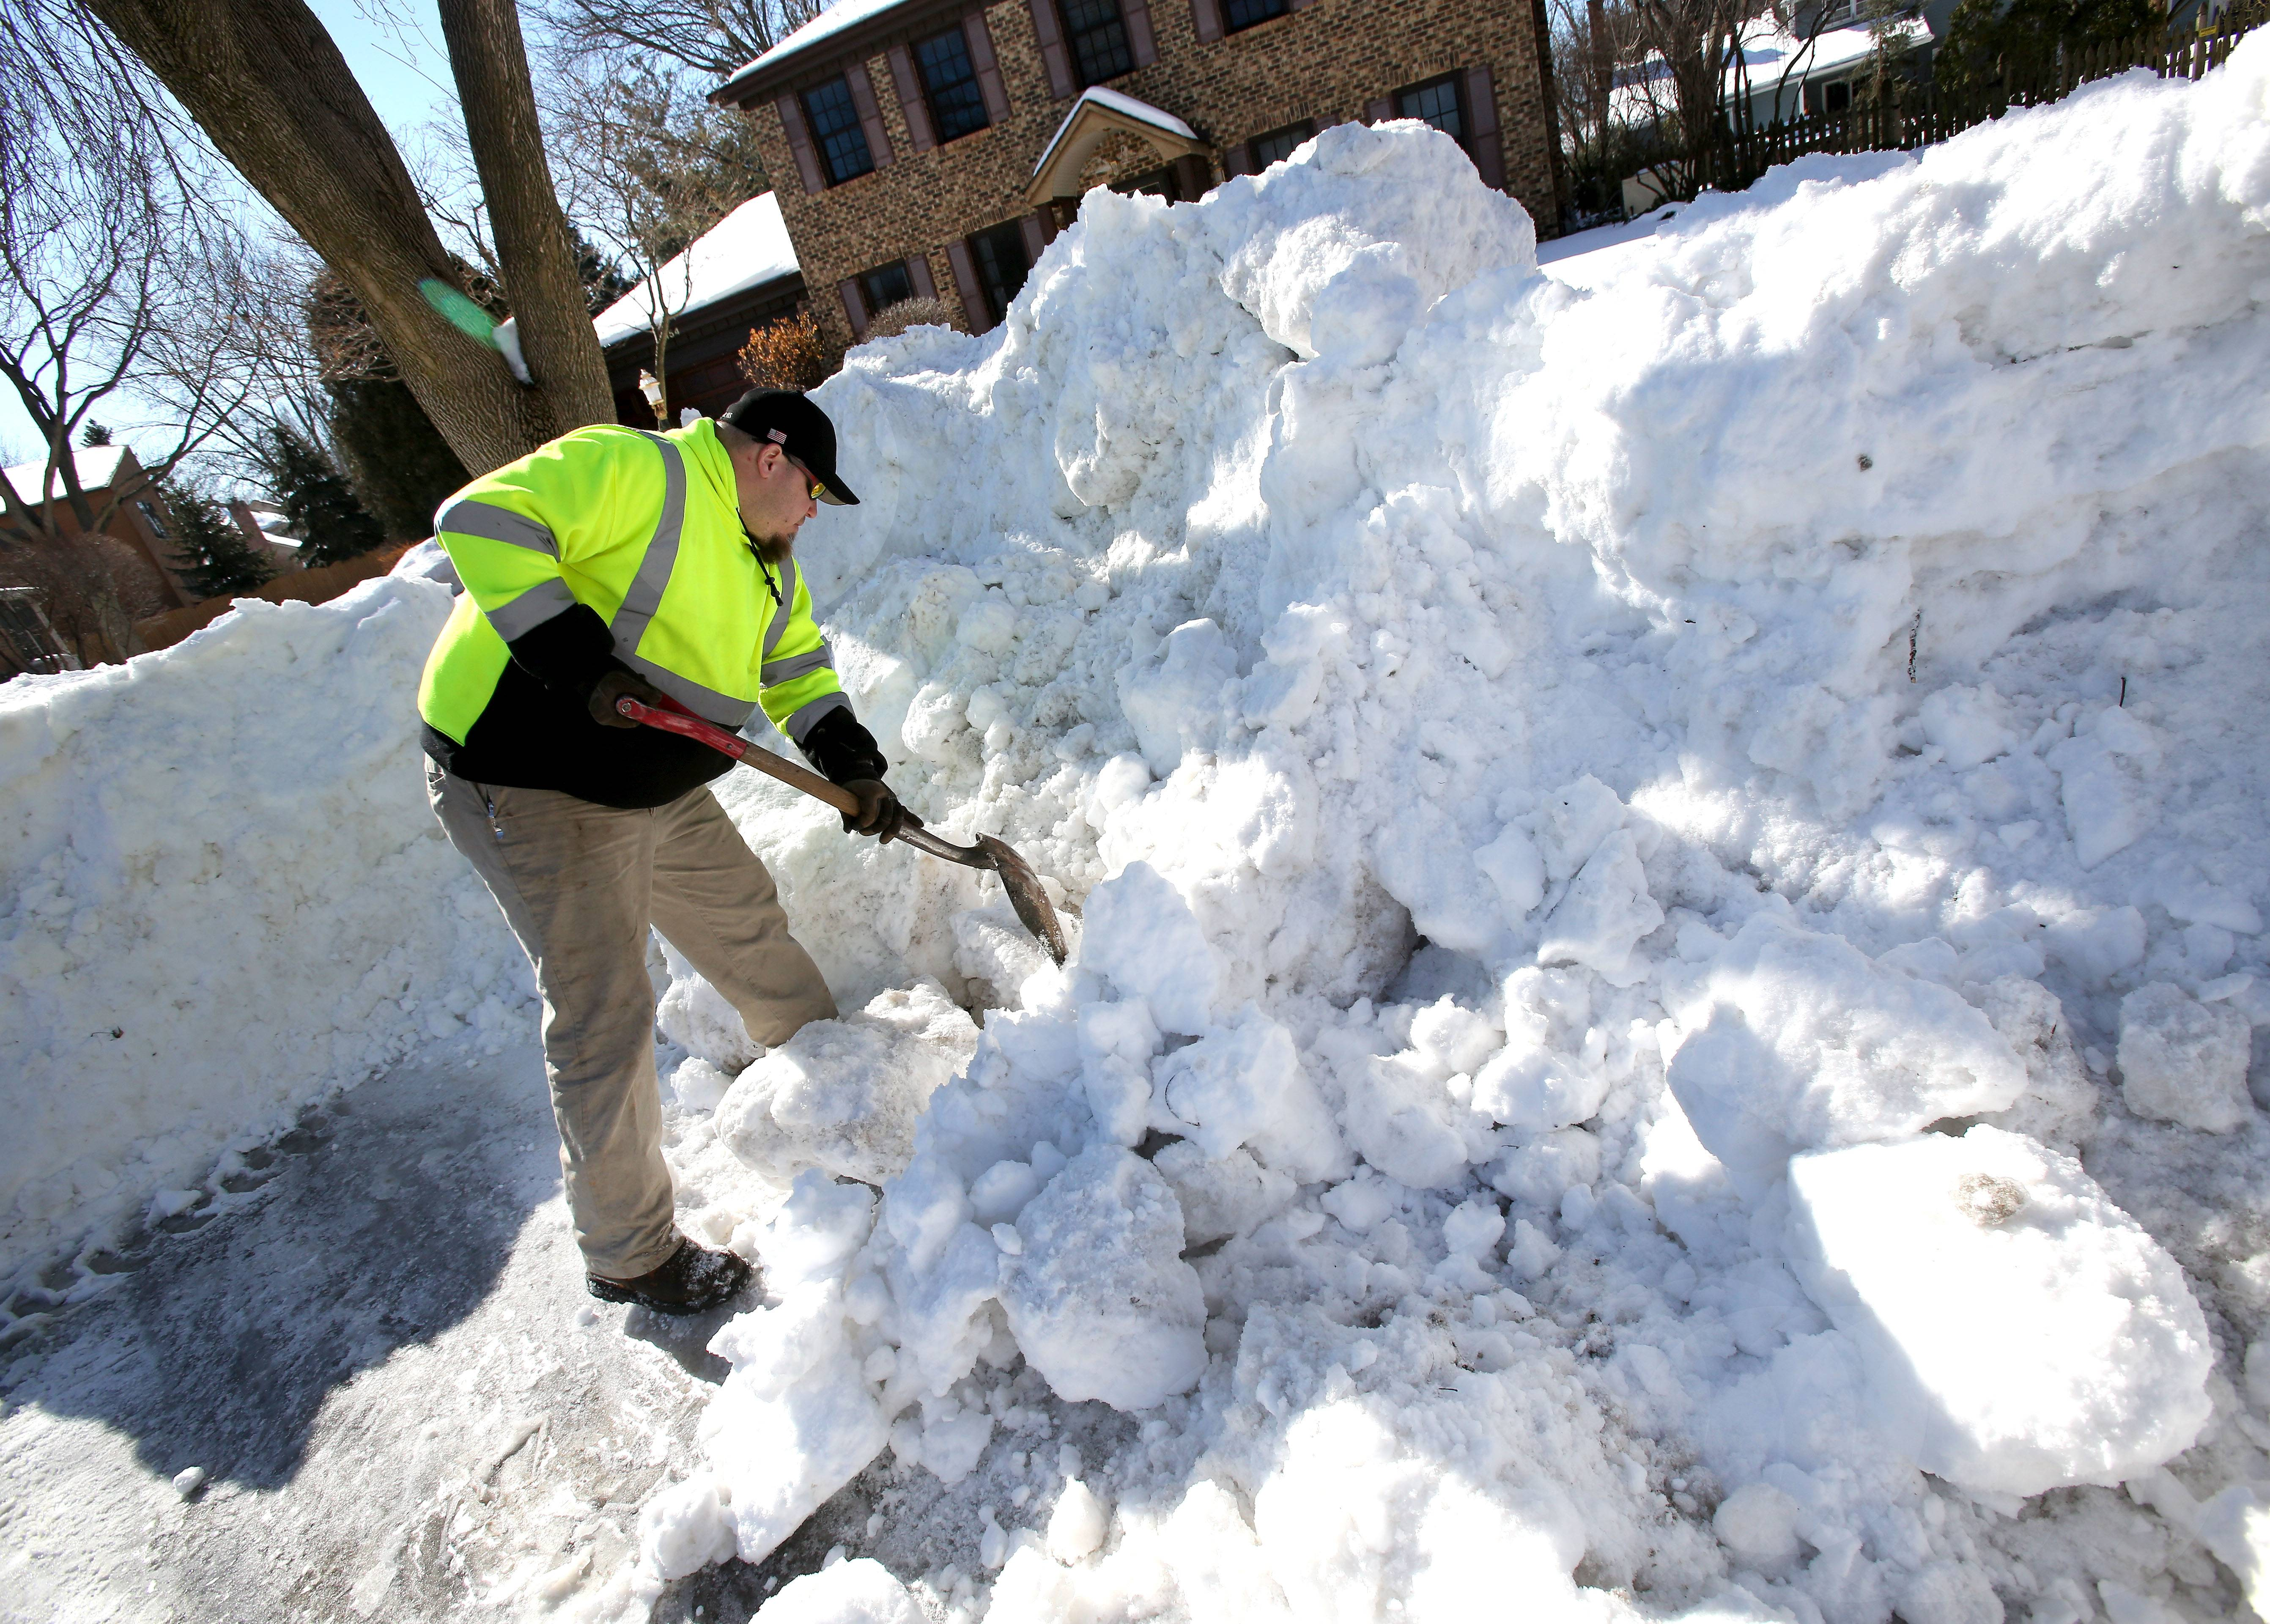 Concerns with possible flooding this week have municipal crews -- and many residents -- clearing ice and snow from storm drains. Nate Langston with Naperville's public works department was working Wednesday along Palm Court.